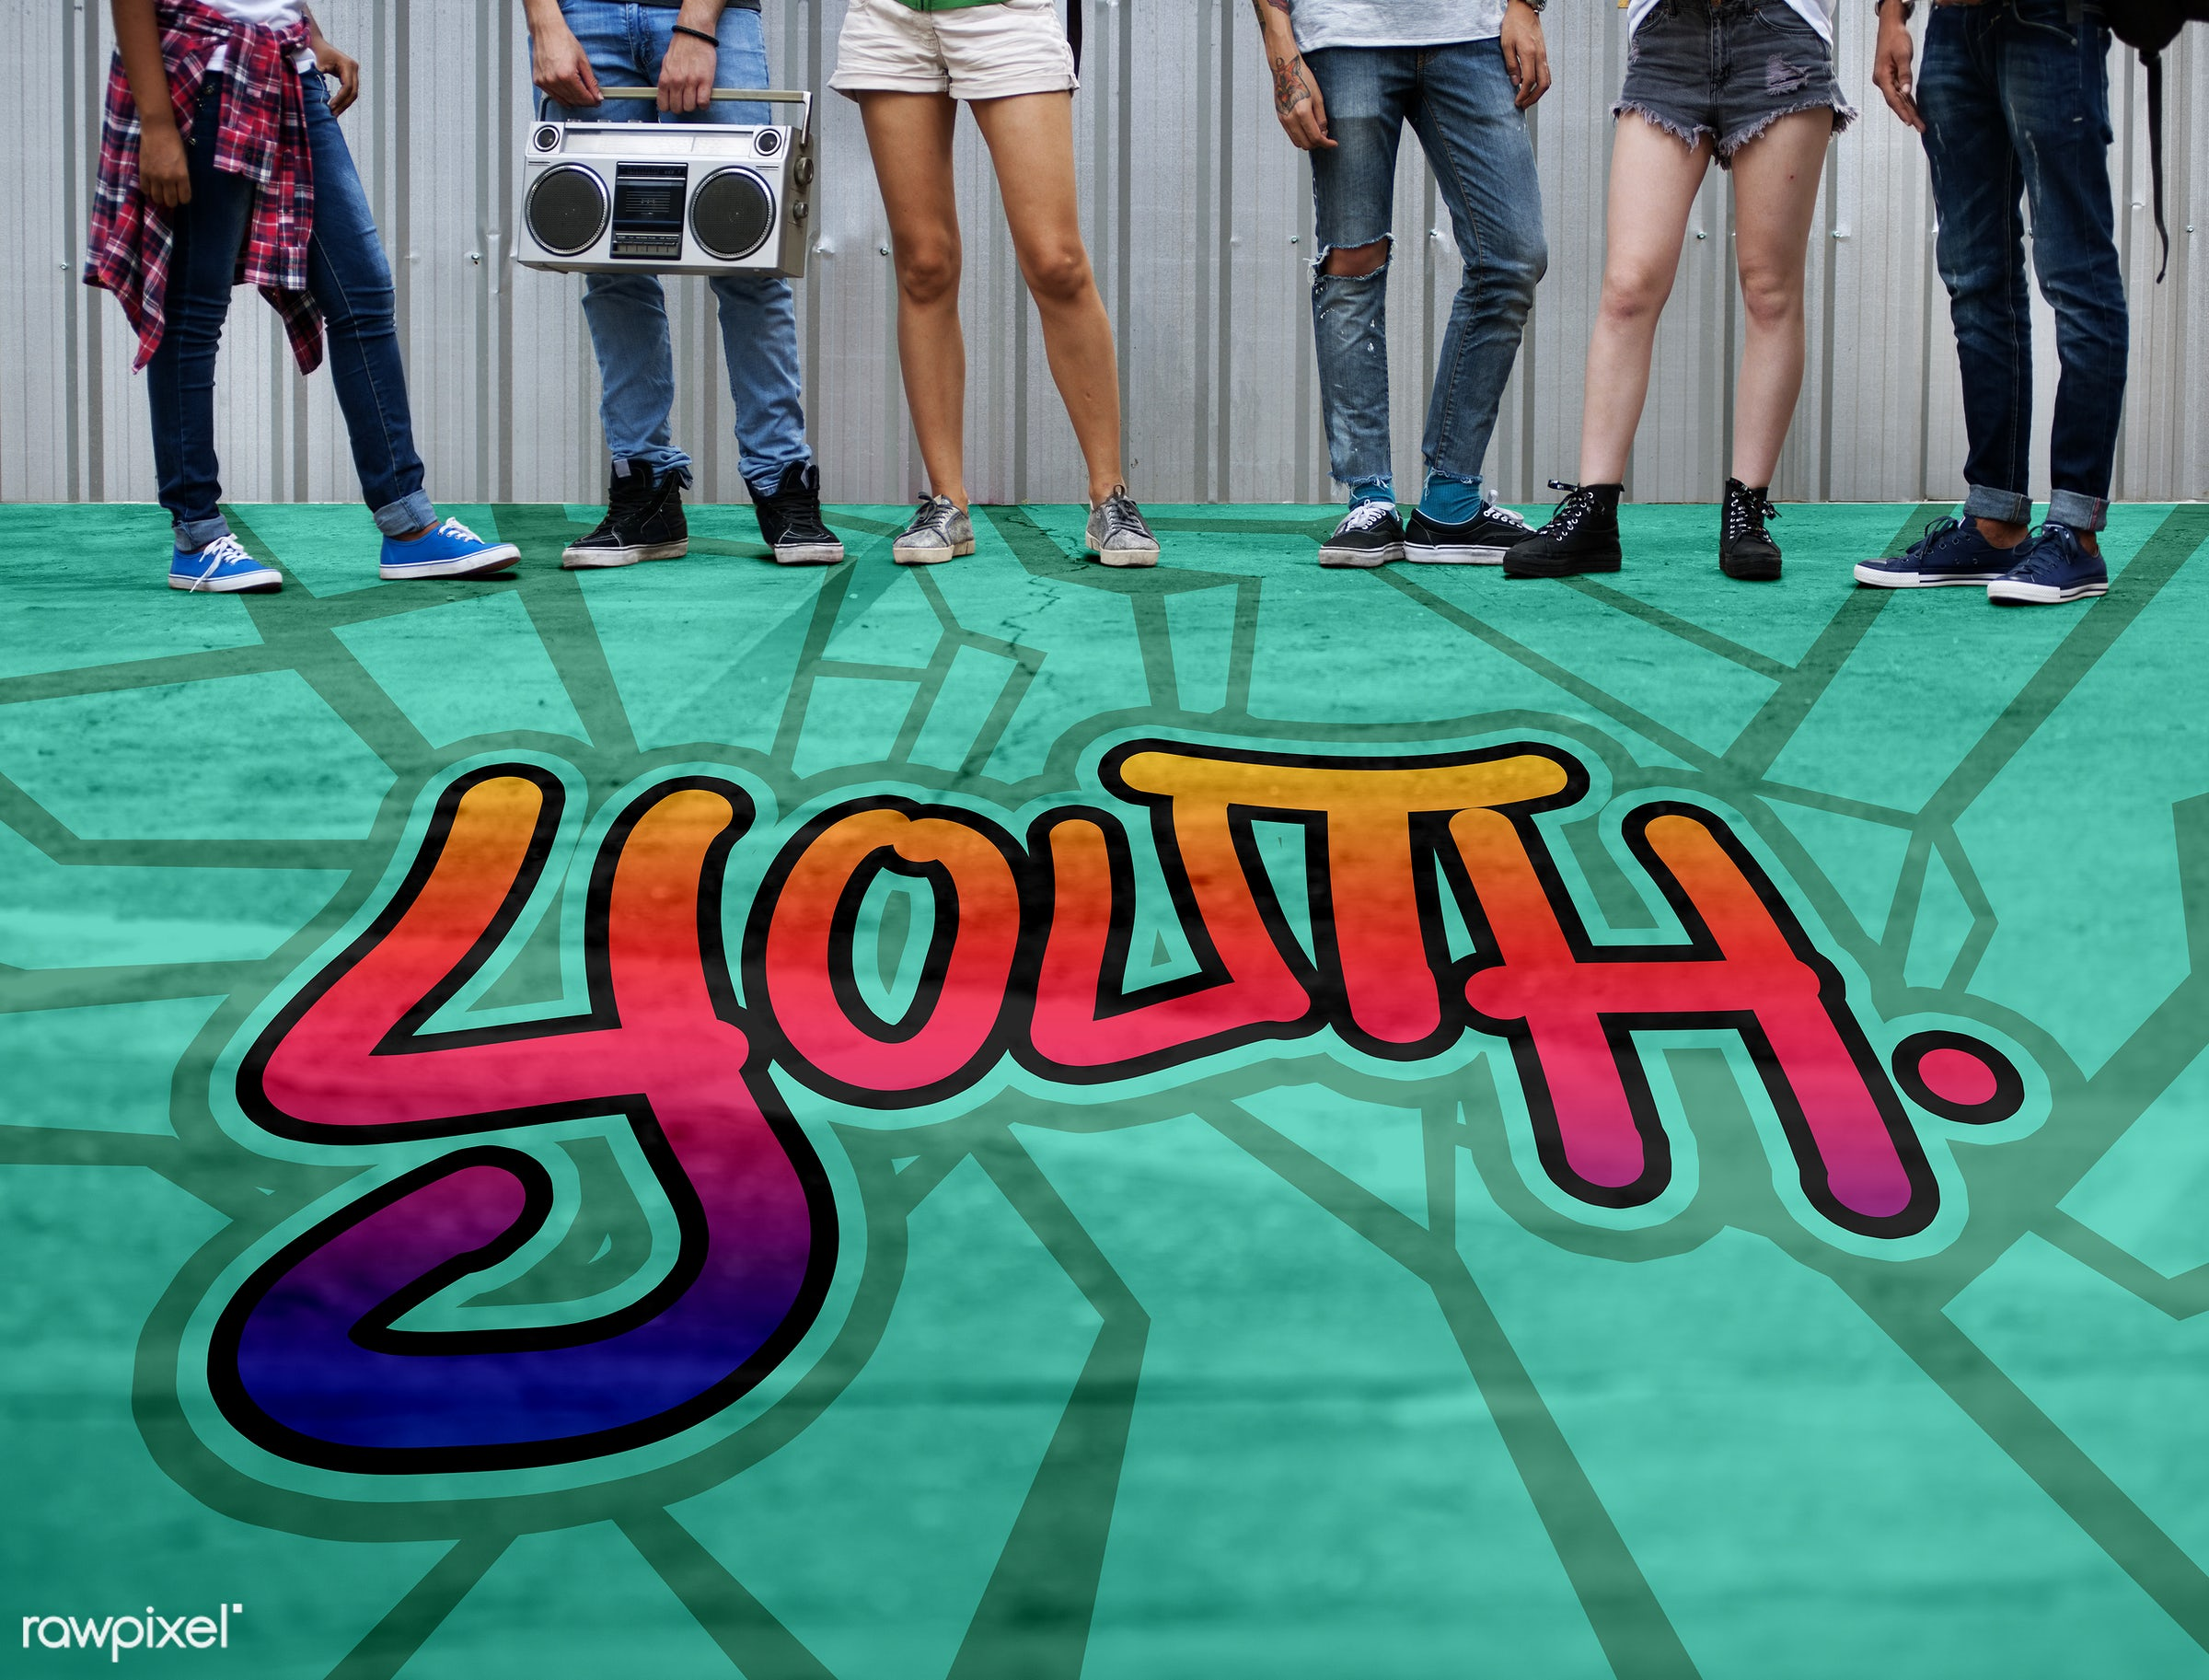 Youth - adolescence, african descent, asian, boyhood, caucasian, childhood, diversity, early years, enjoyment, friends,...